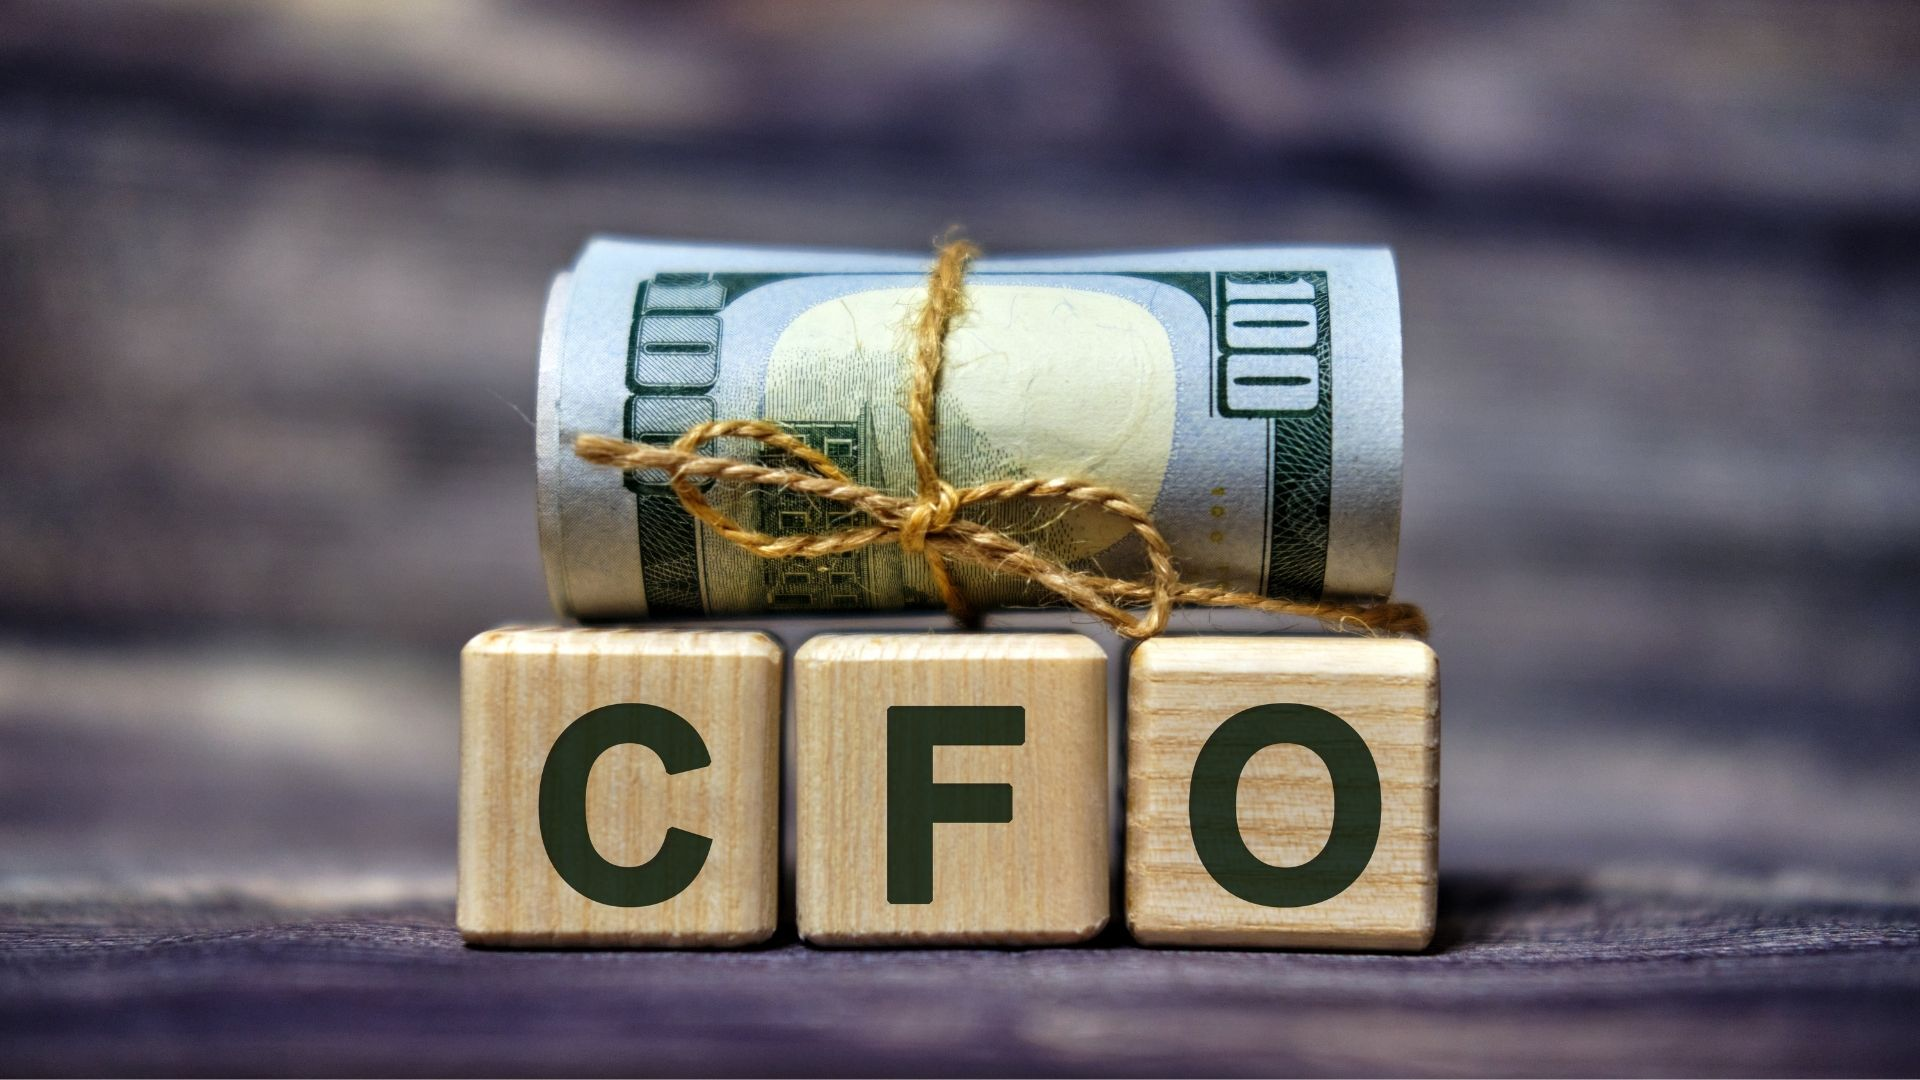 CFOs Prioritise Business Visibility to Rebuild Their Business in a Post-Covid World 1